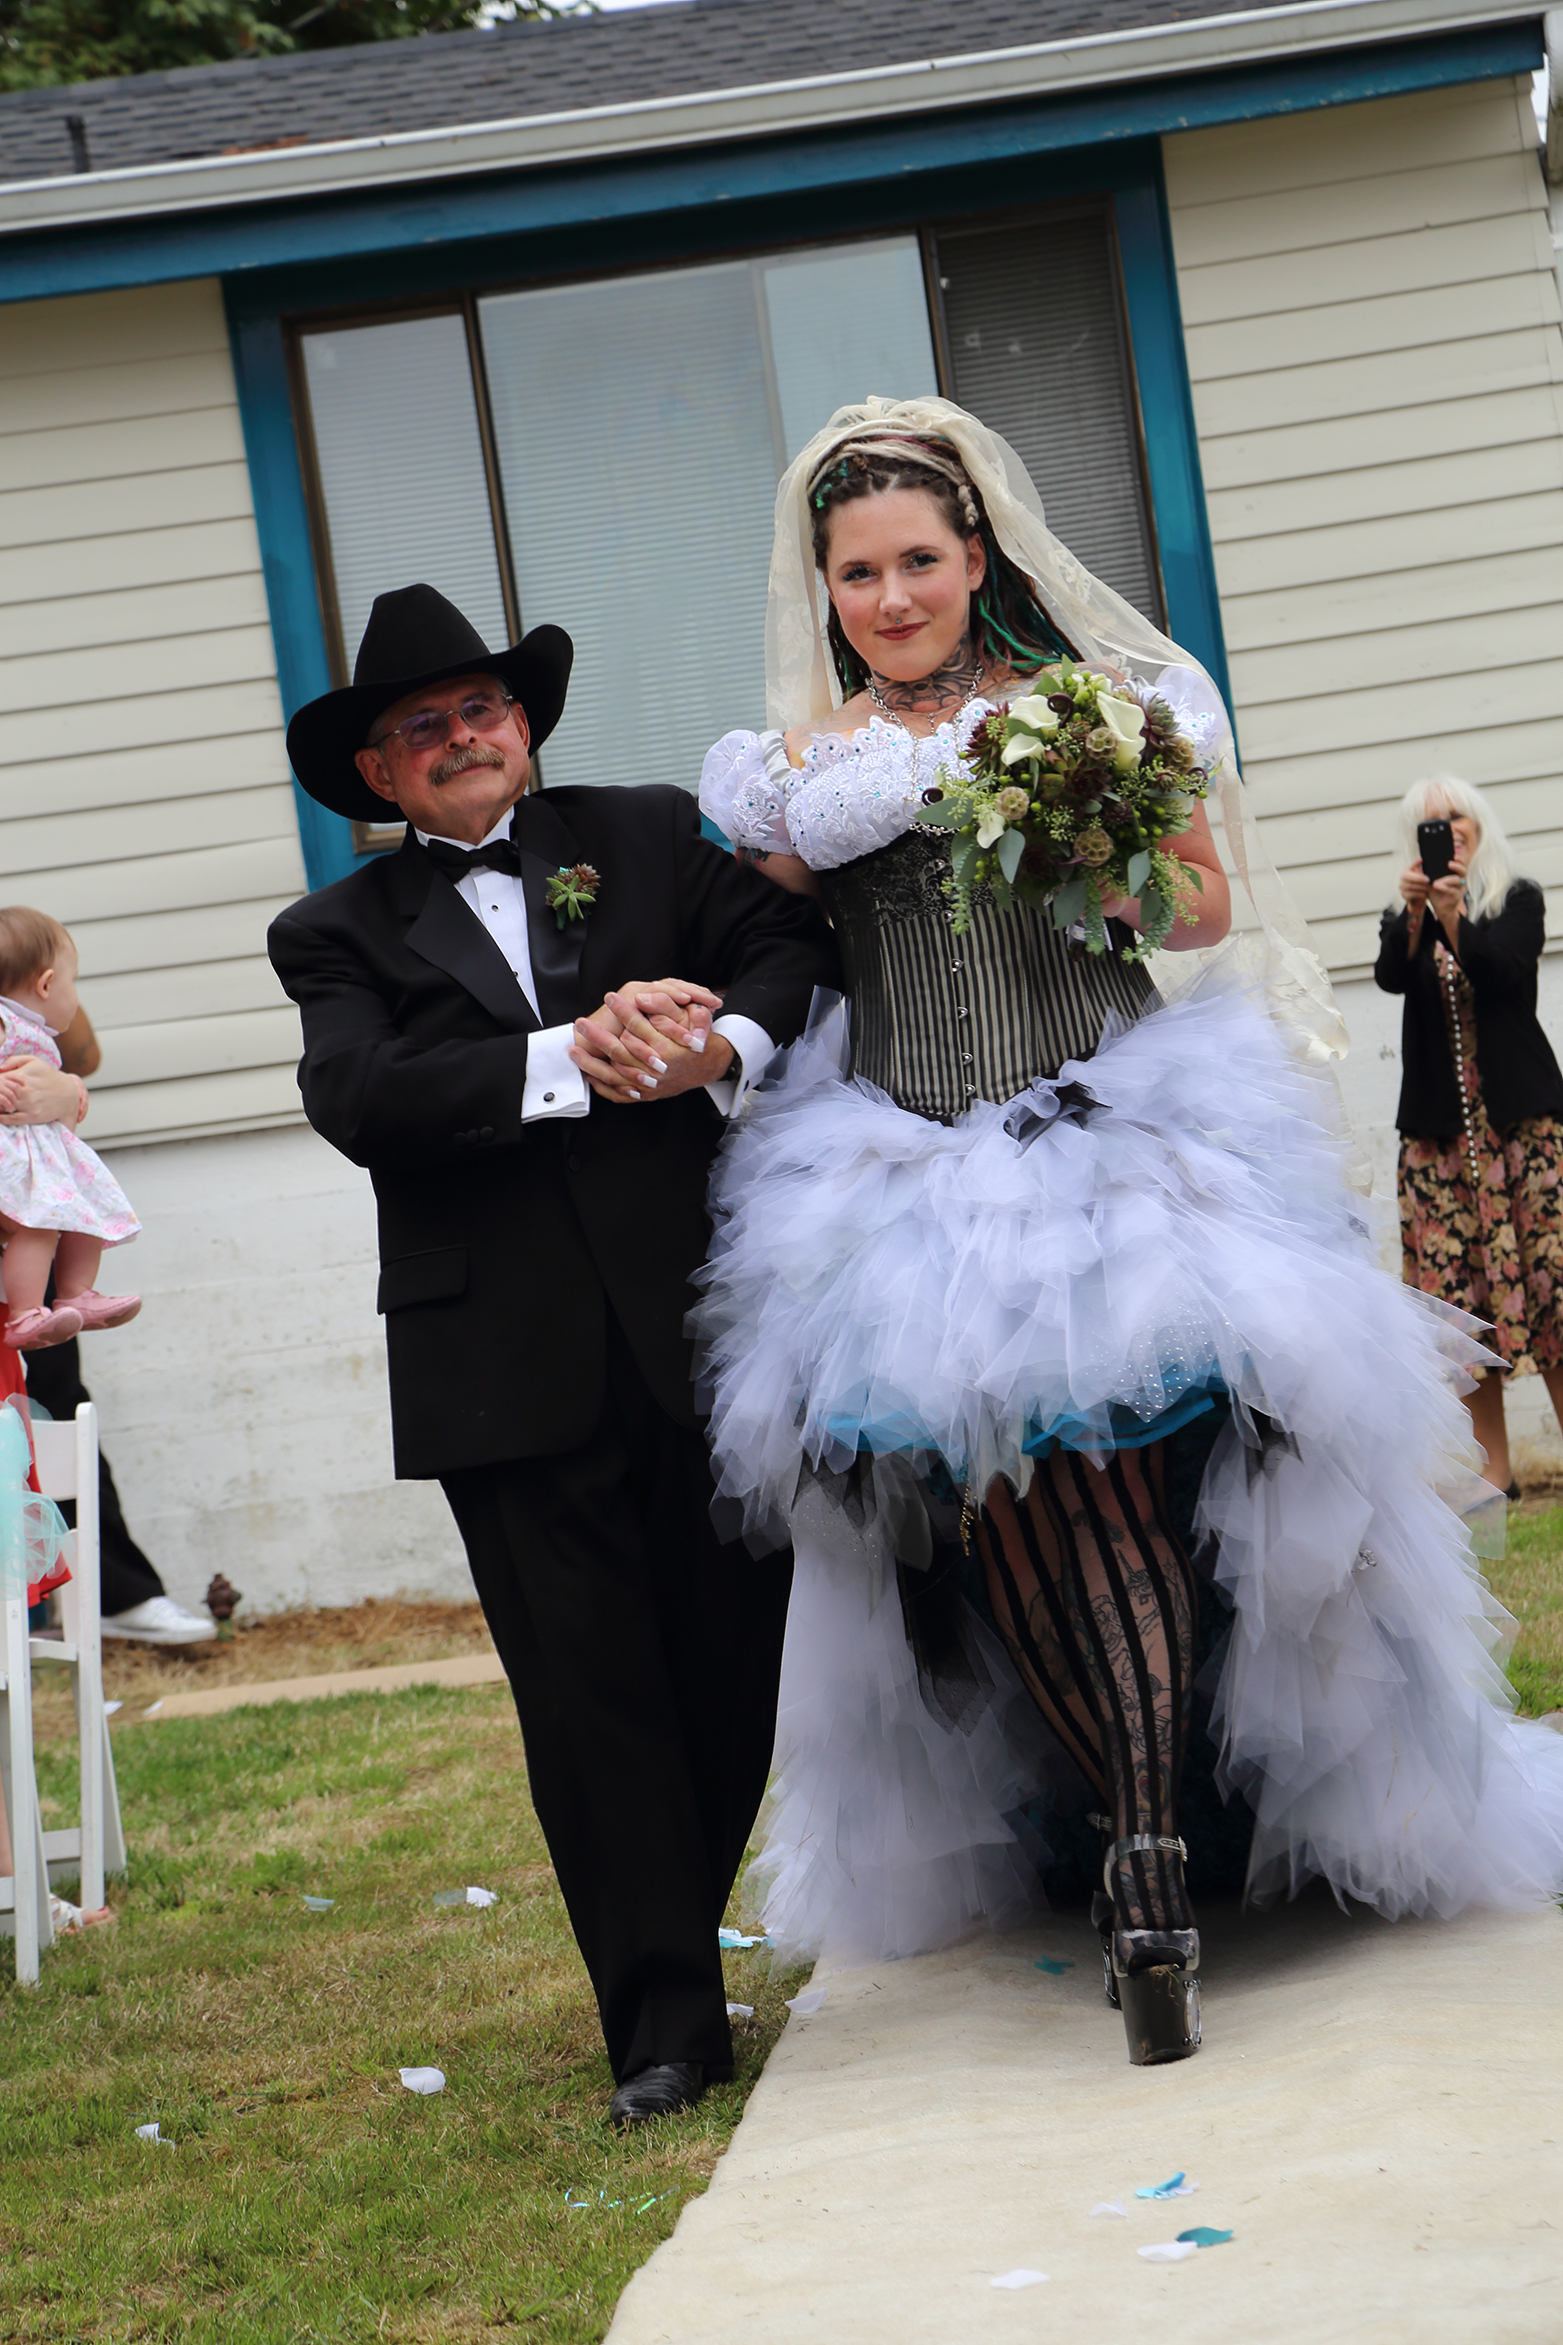 2014 Songs For The Bride To Walk Down The Aisle To